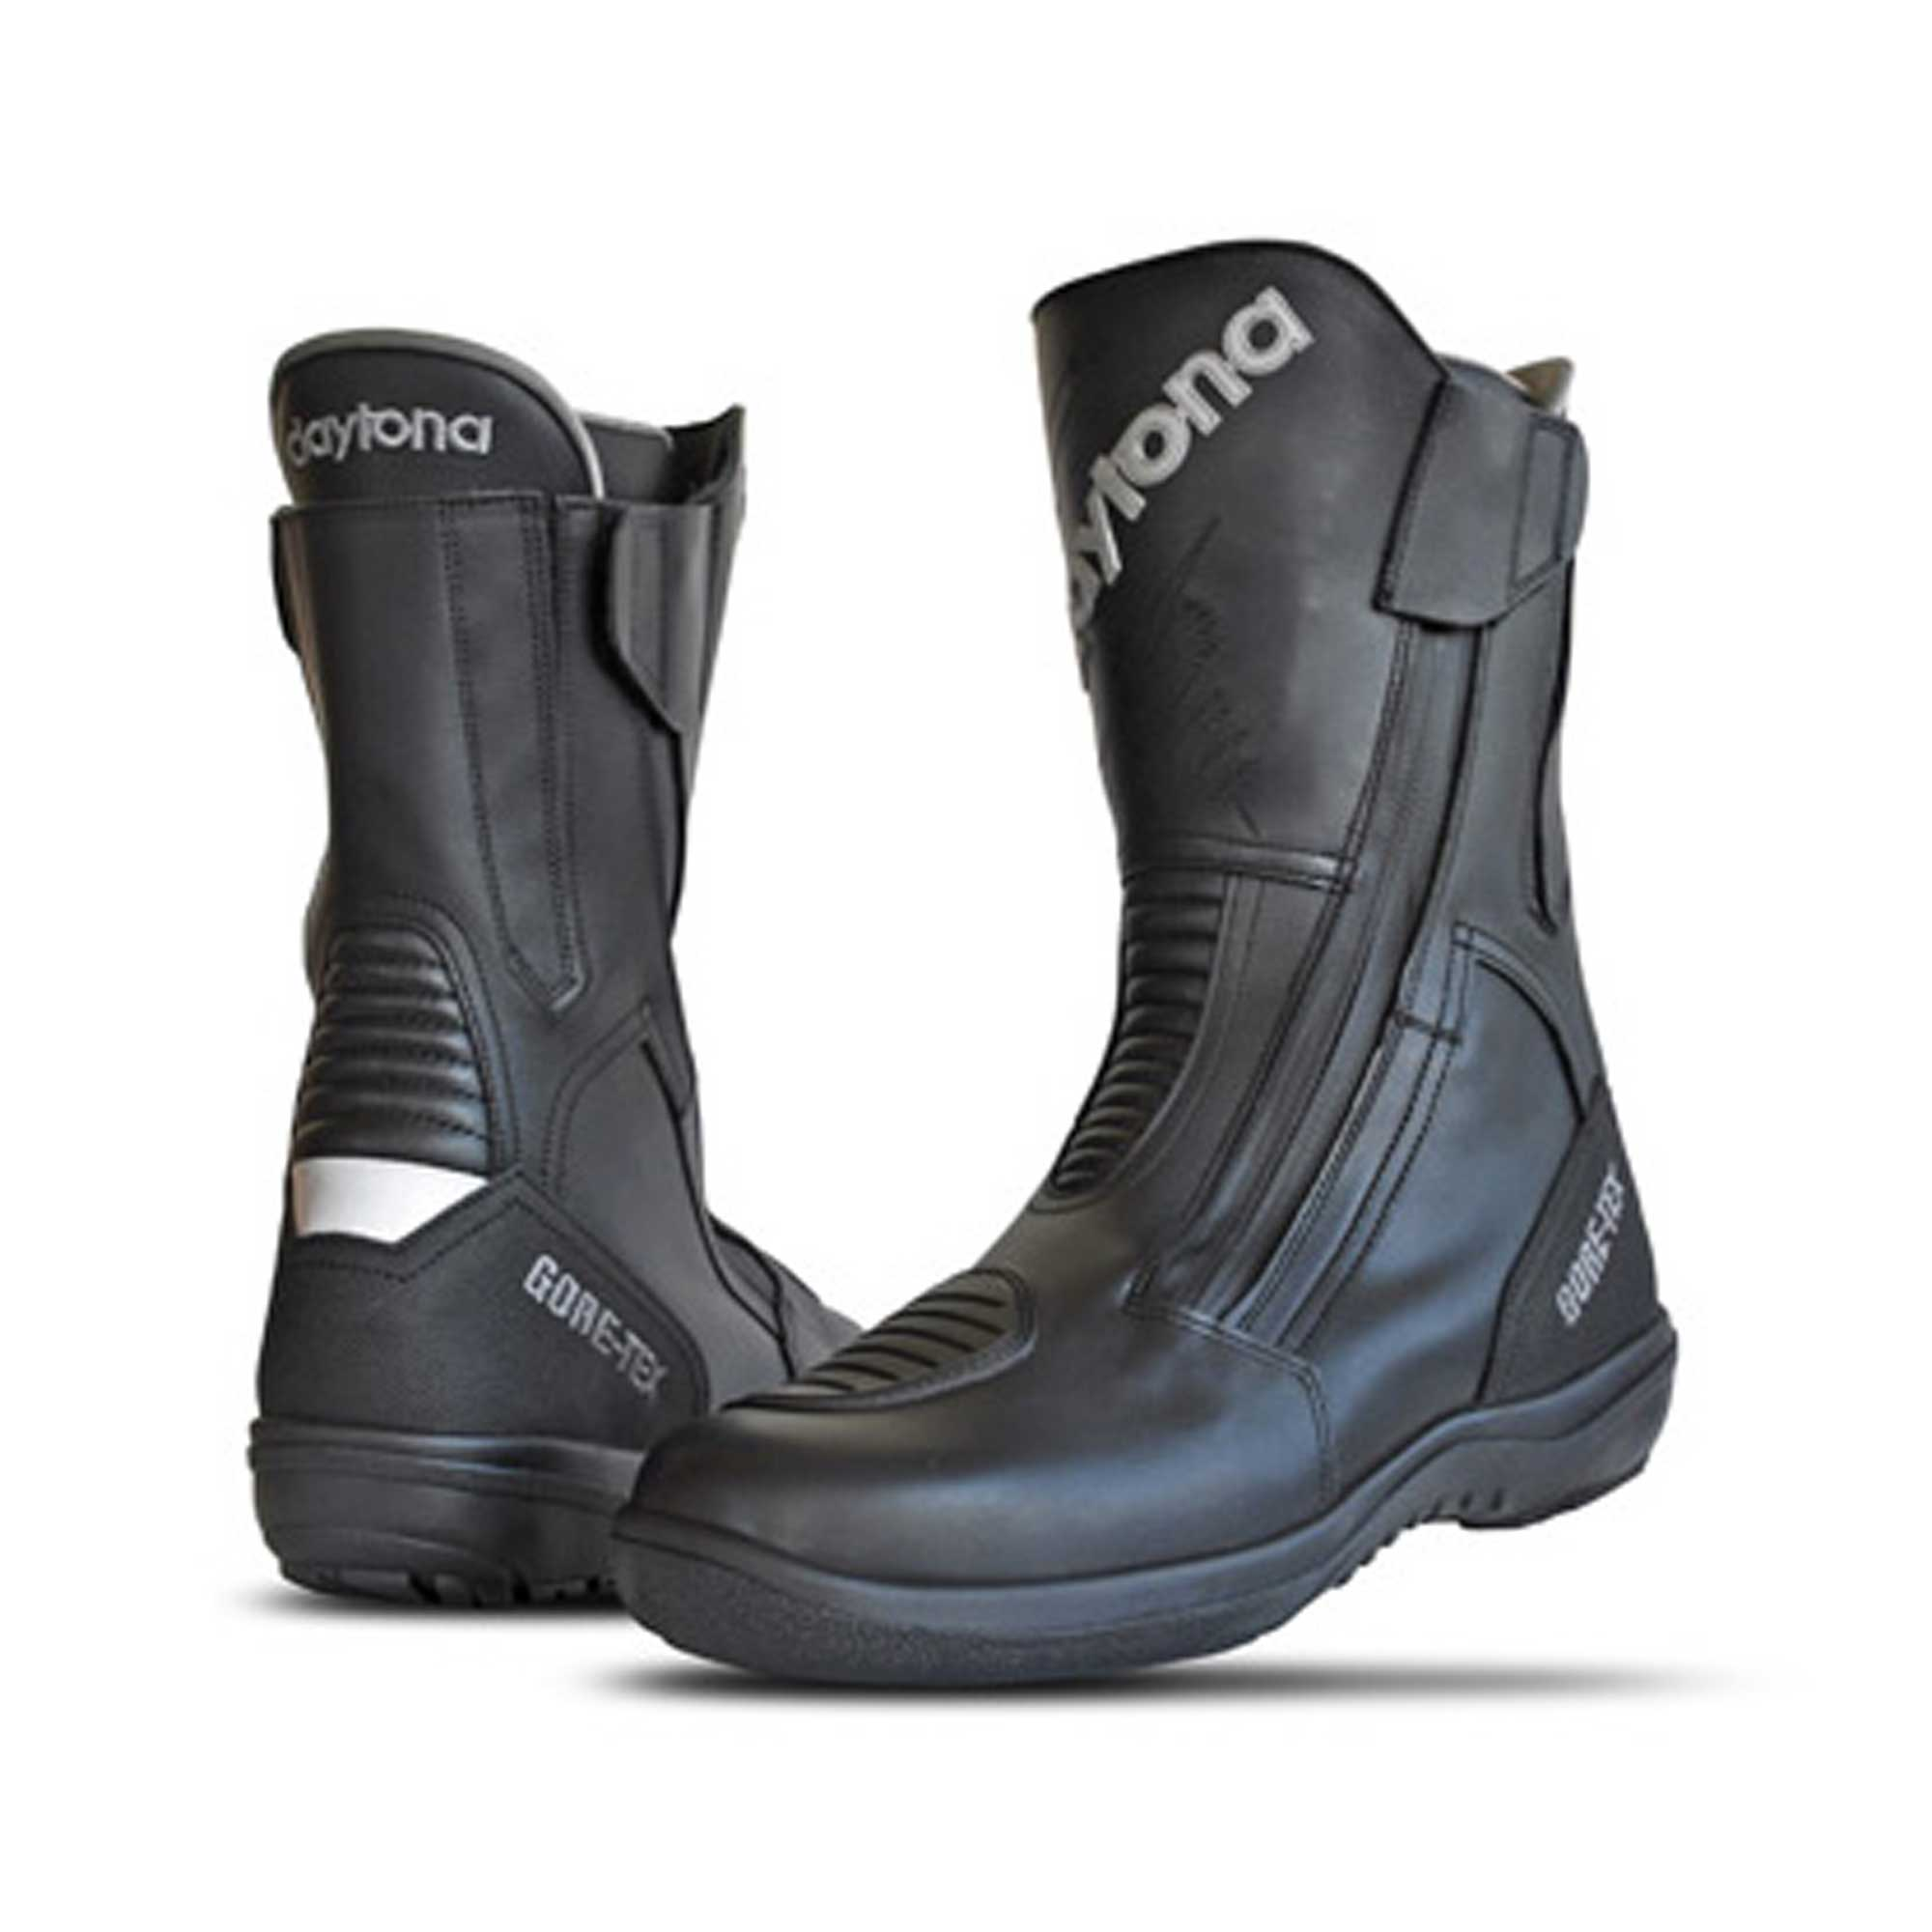 DAYTONA ROAD STAR GTX Black Leather GORE TEX Motorcycle